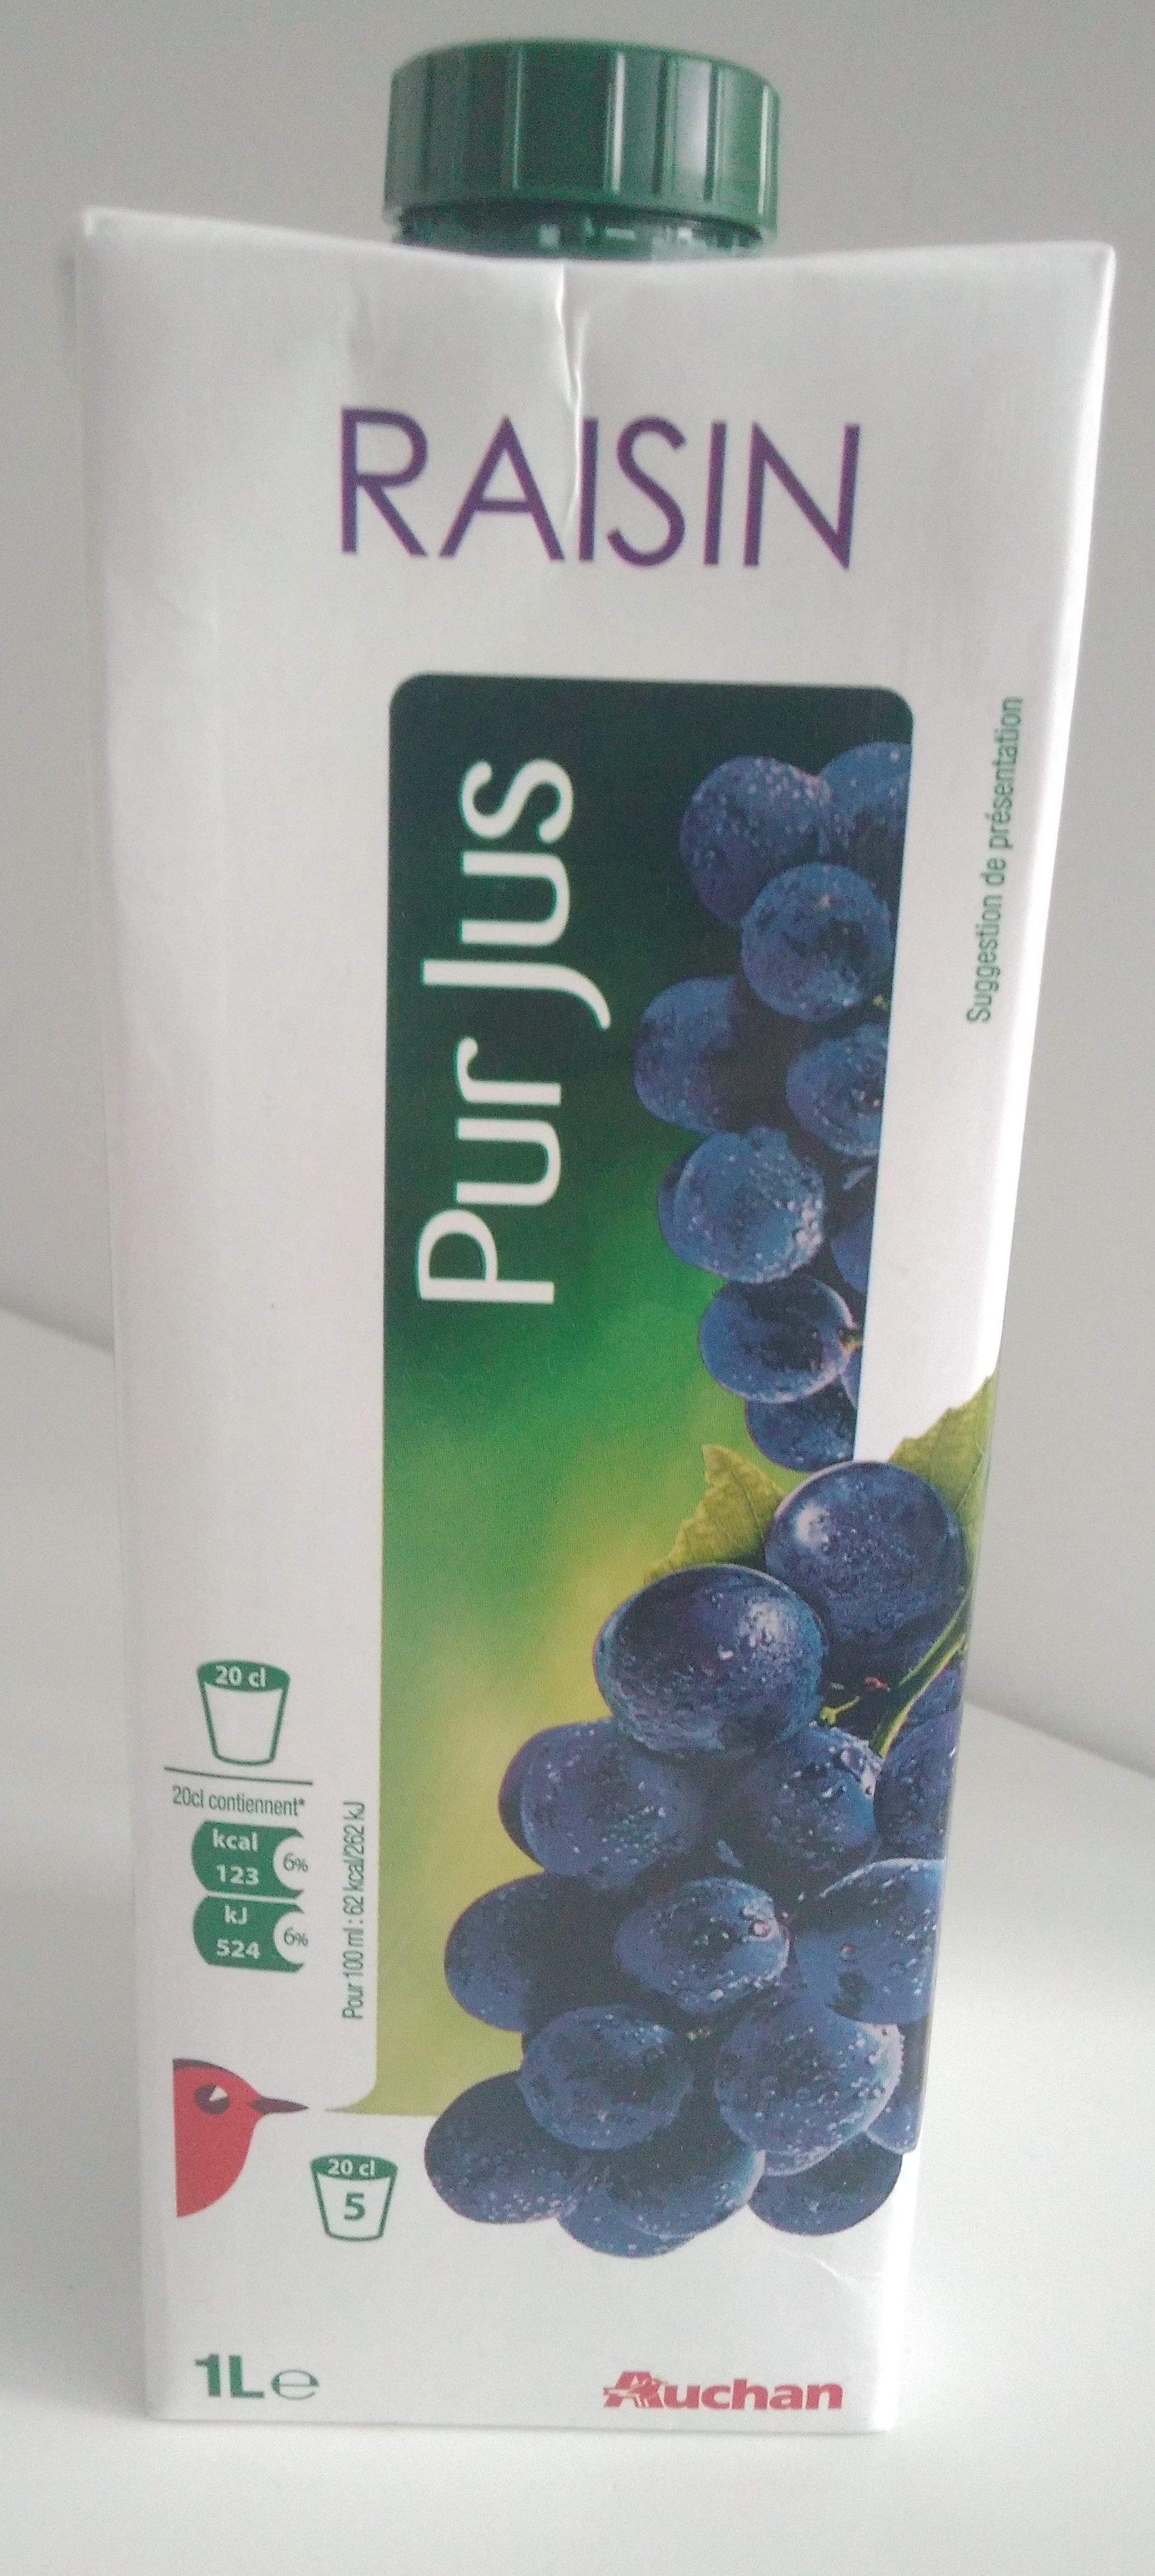 100 % pur jus, raisin - Product - fr